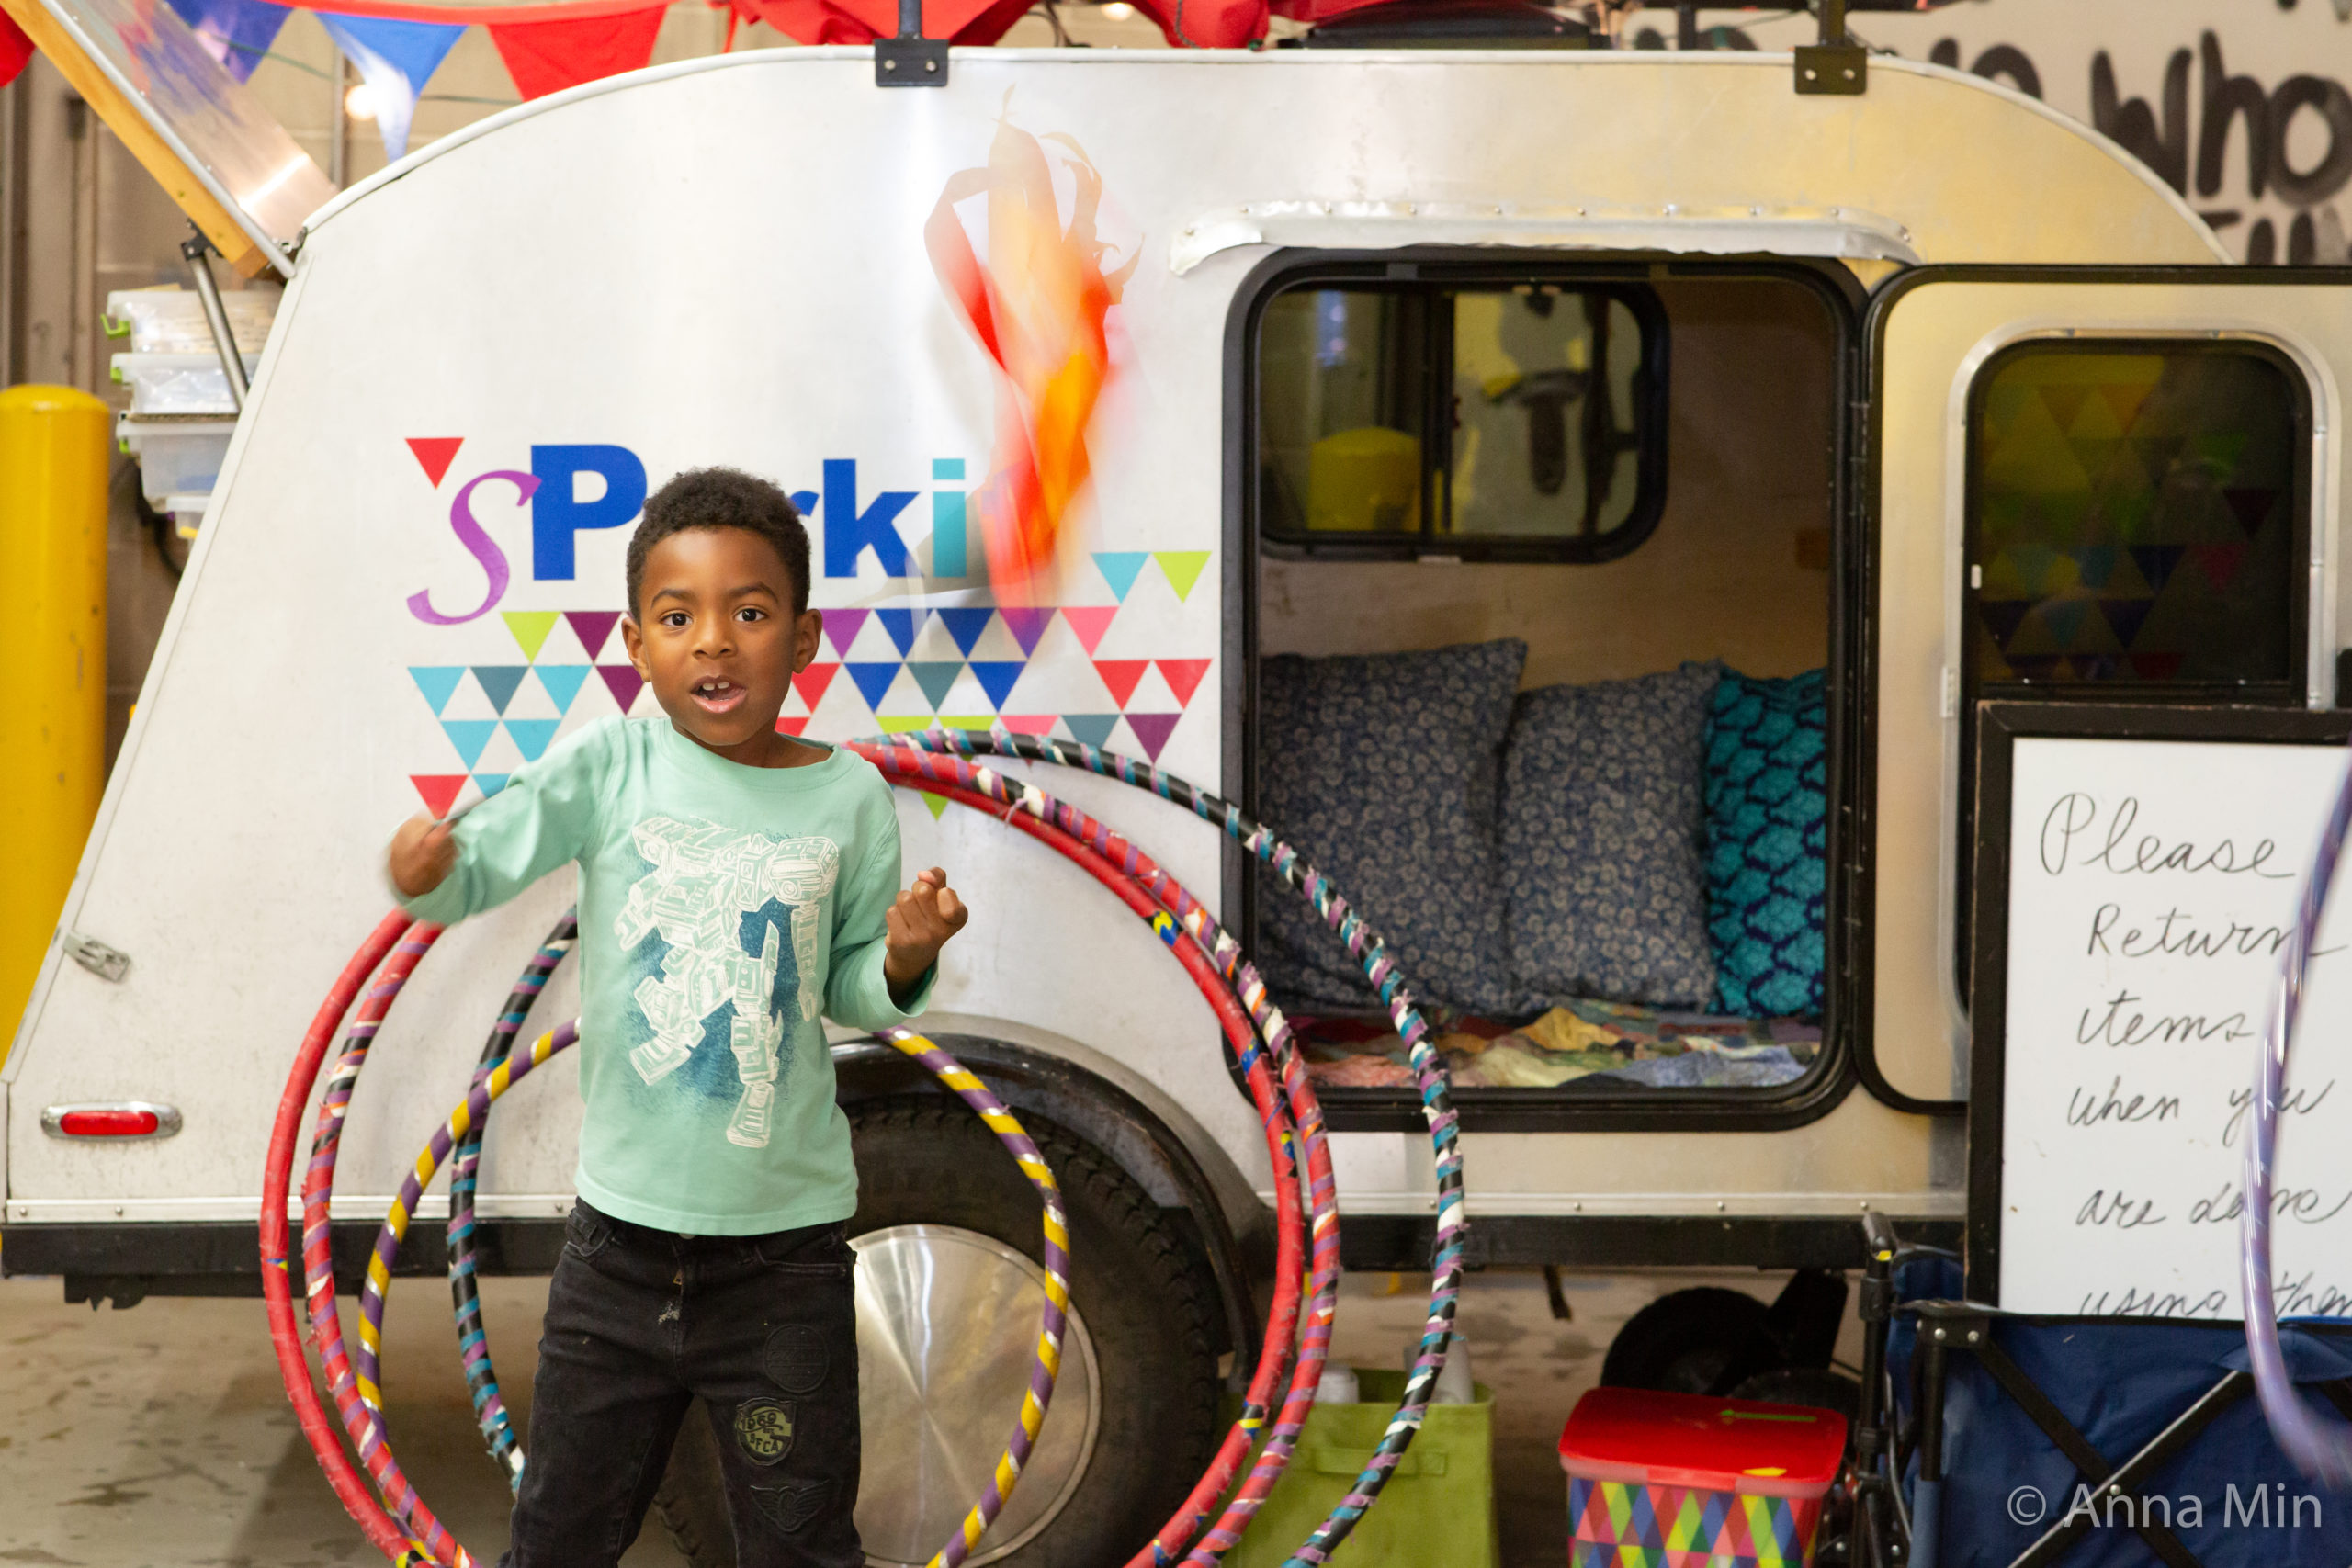 A child plays with hula hoops and fabric at the SparkIt Trailer